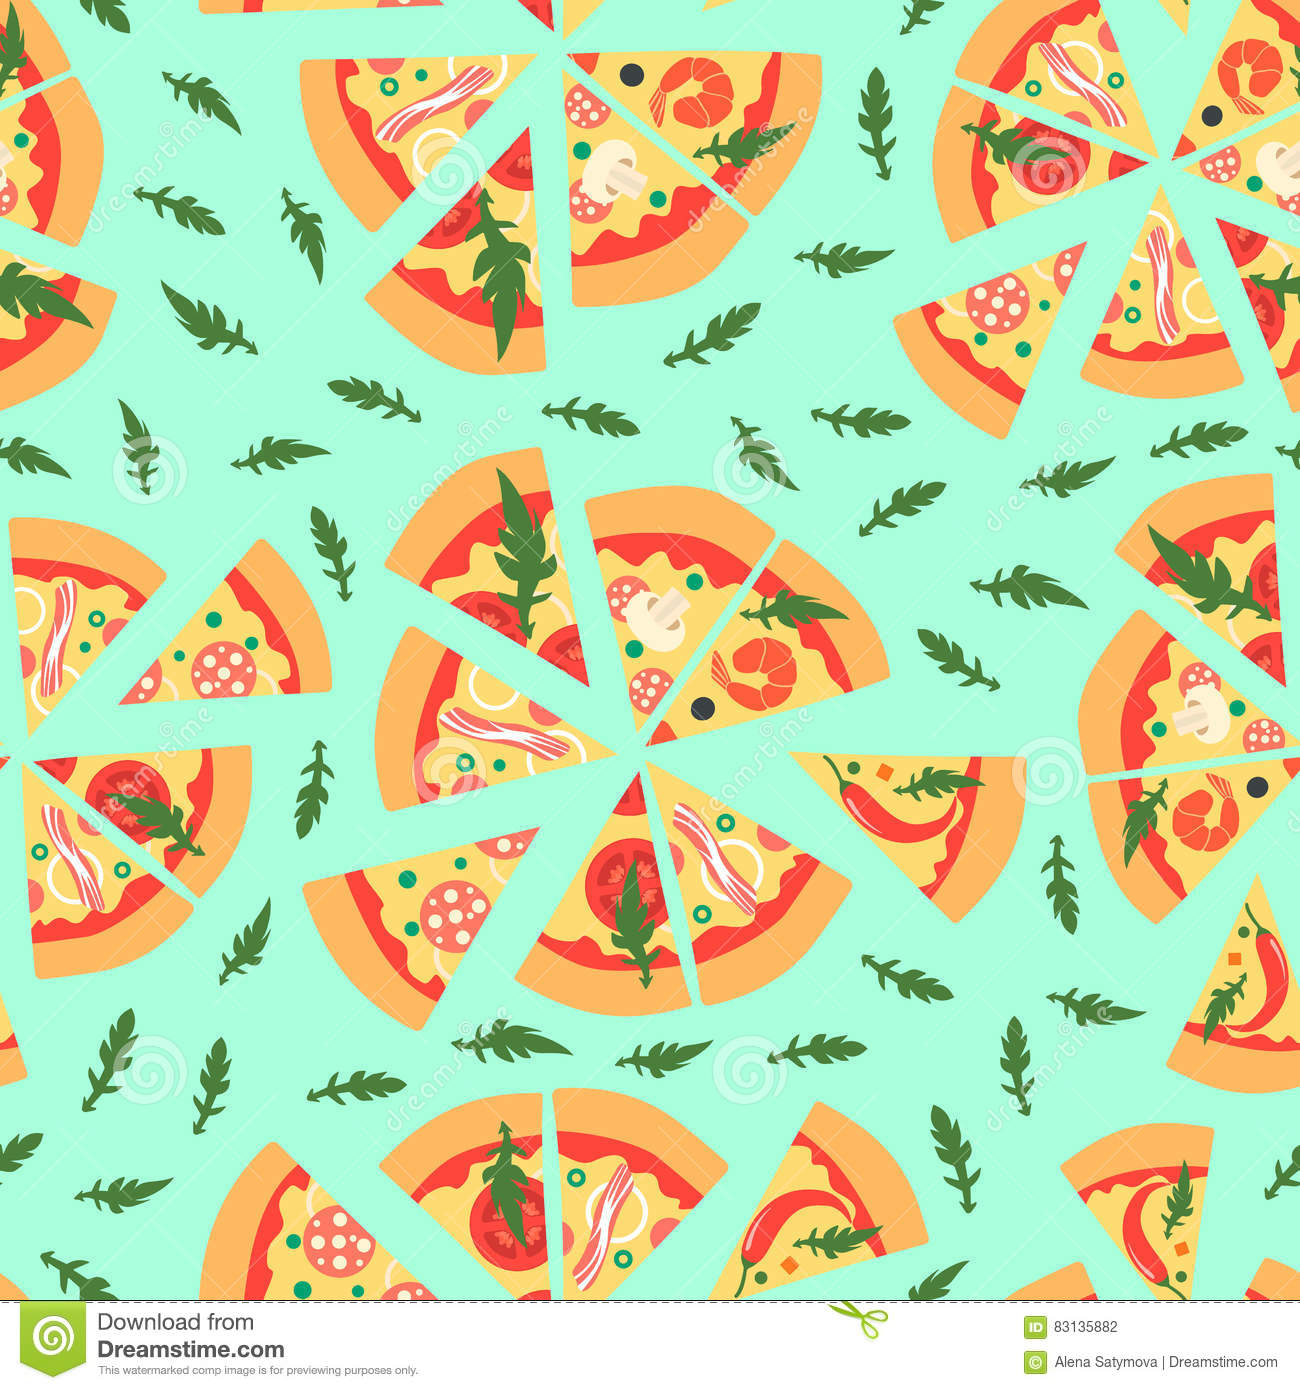 repeating pizza background - photo #9